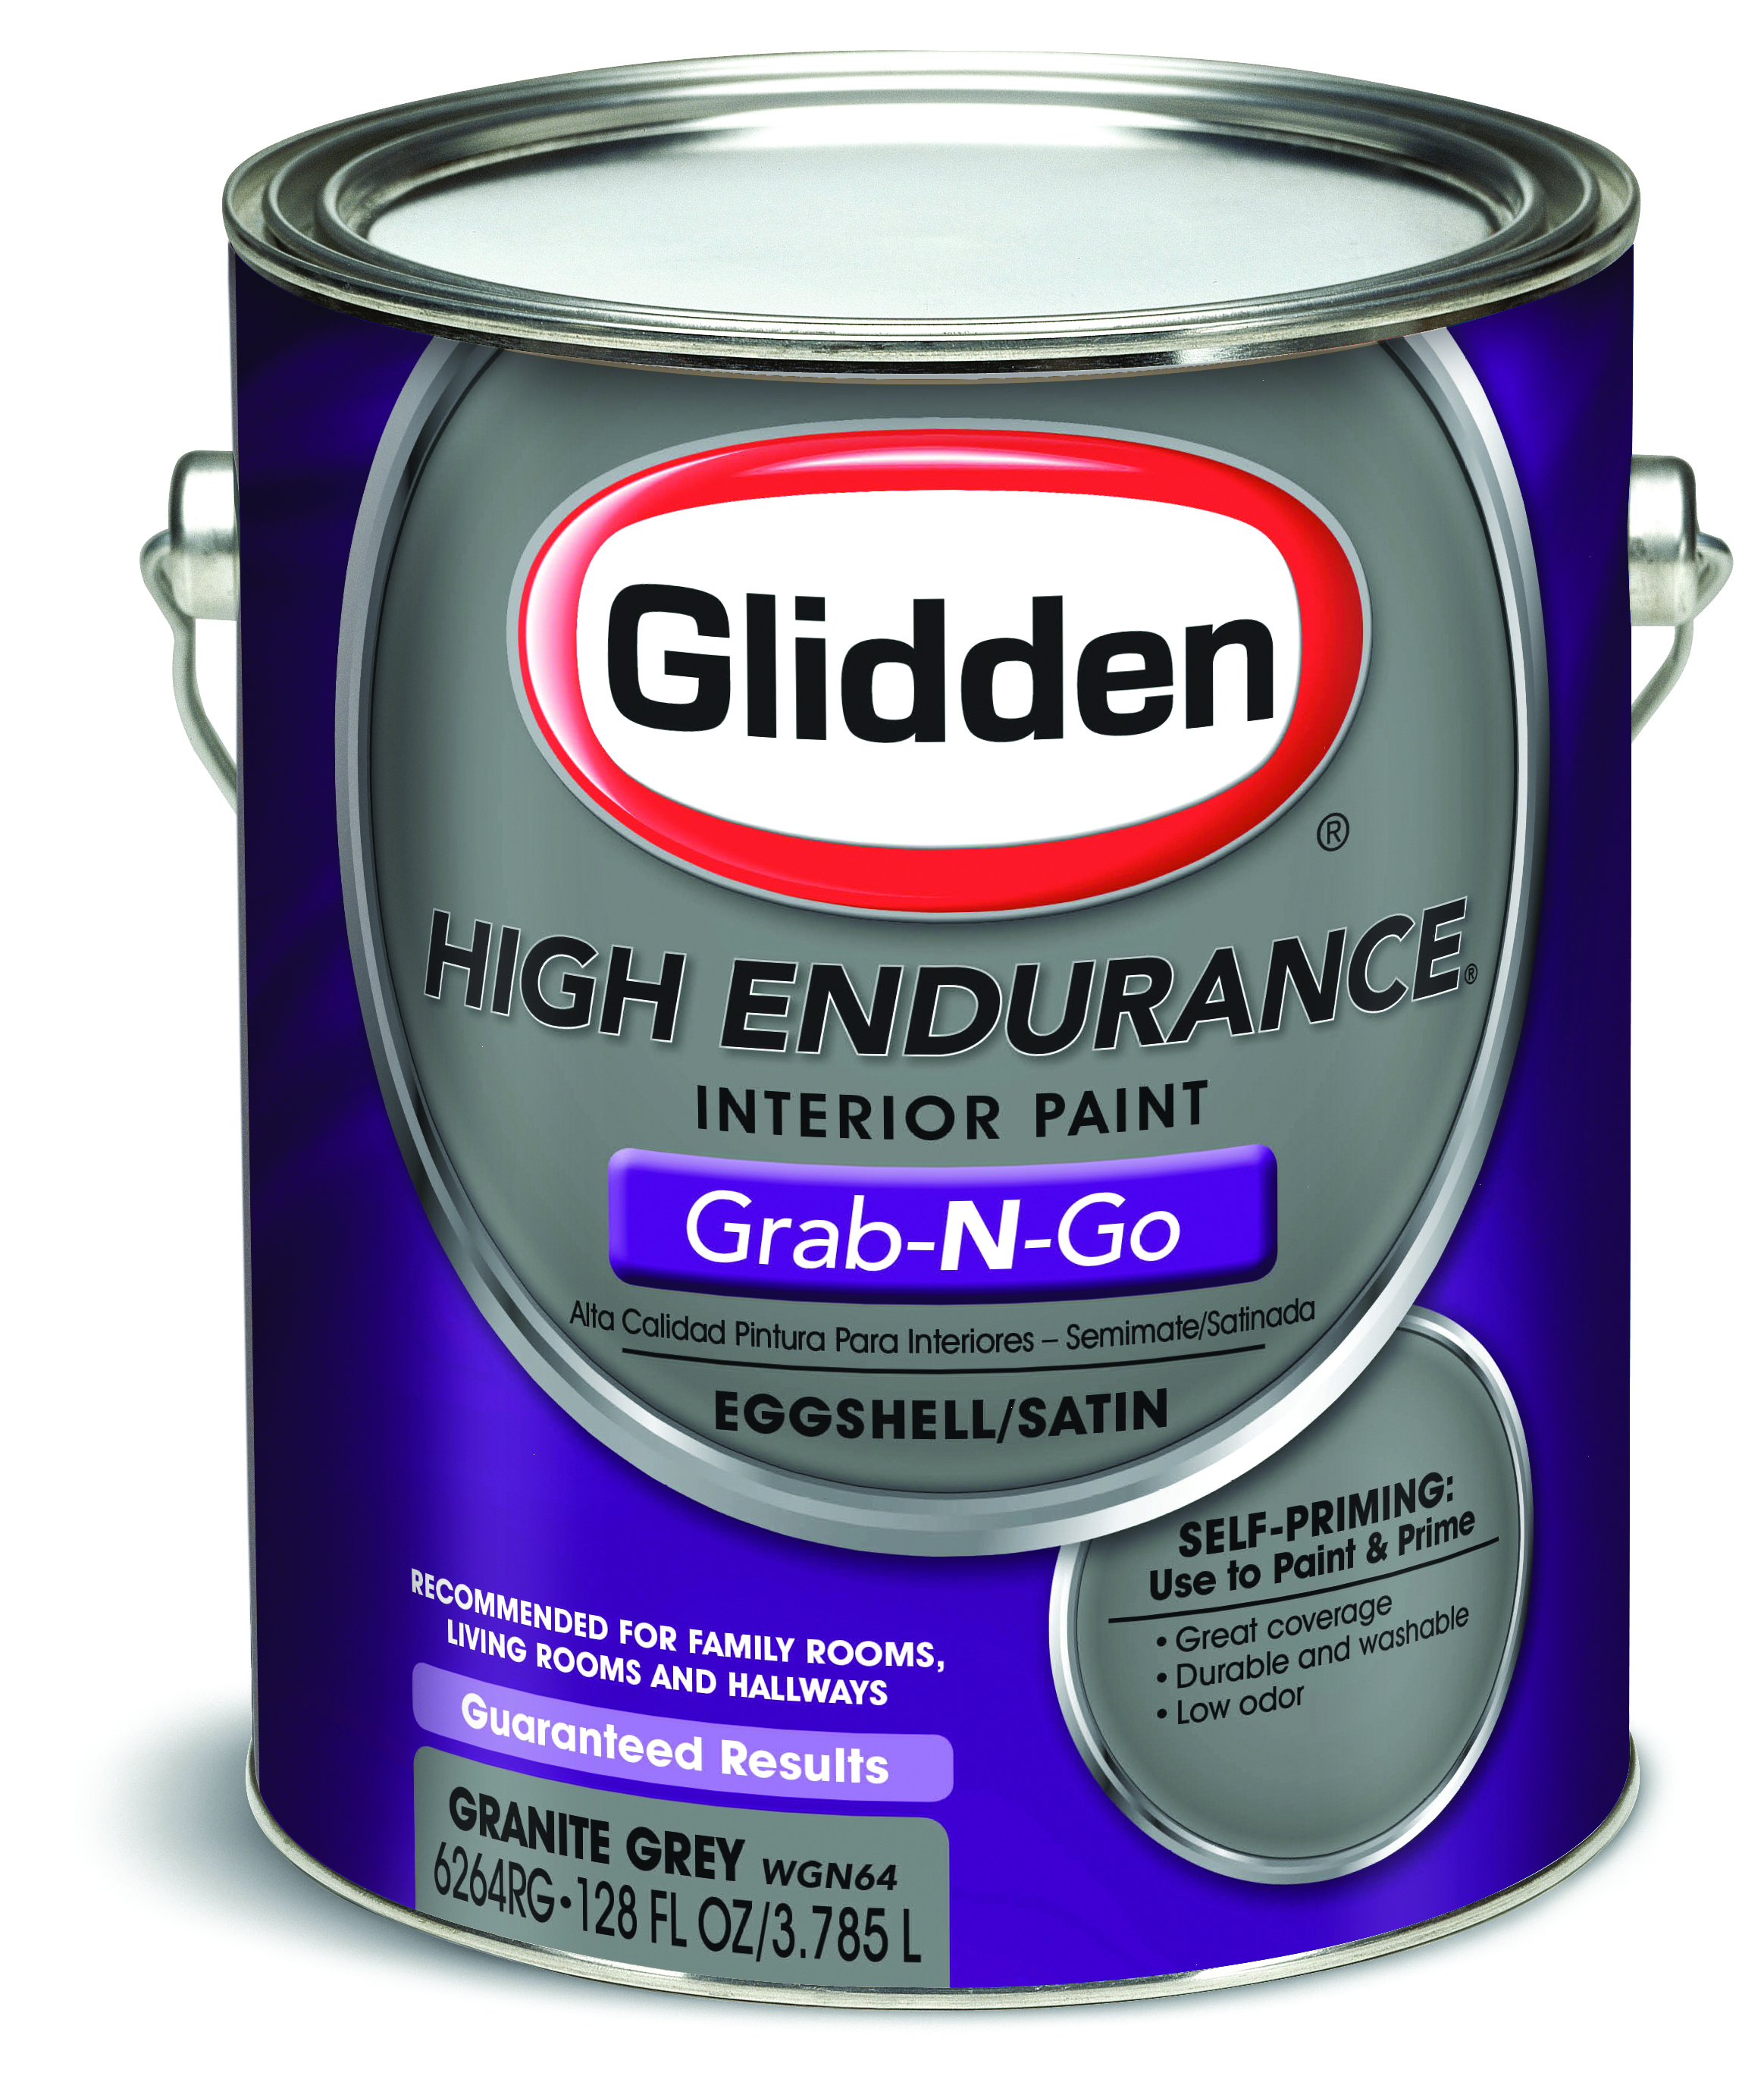 Glidden Paint By Ppg Launches Grab N Go Pre Mixed At S